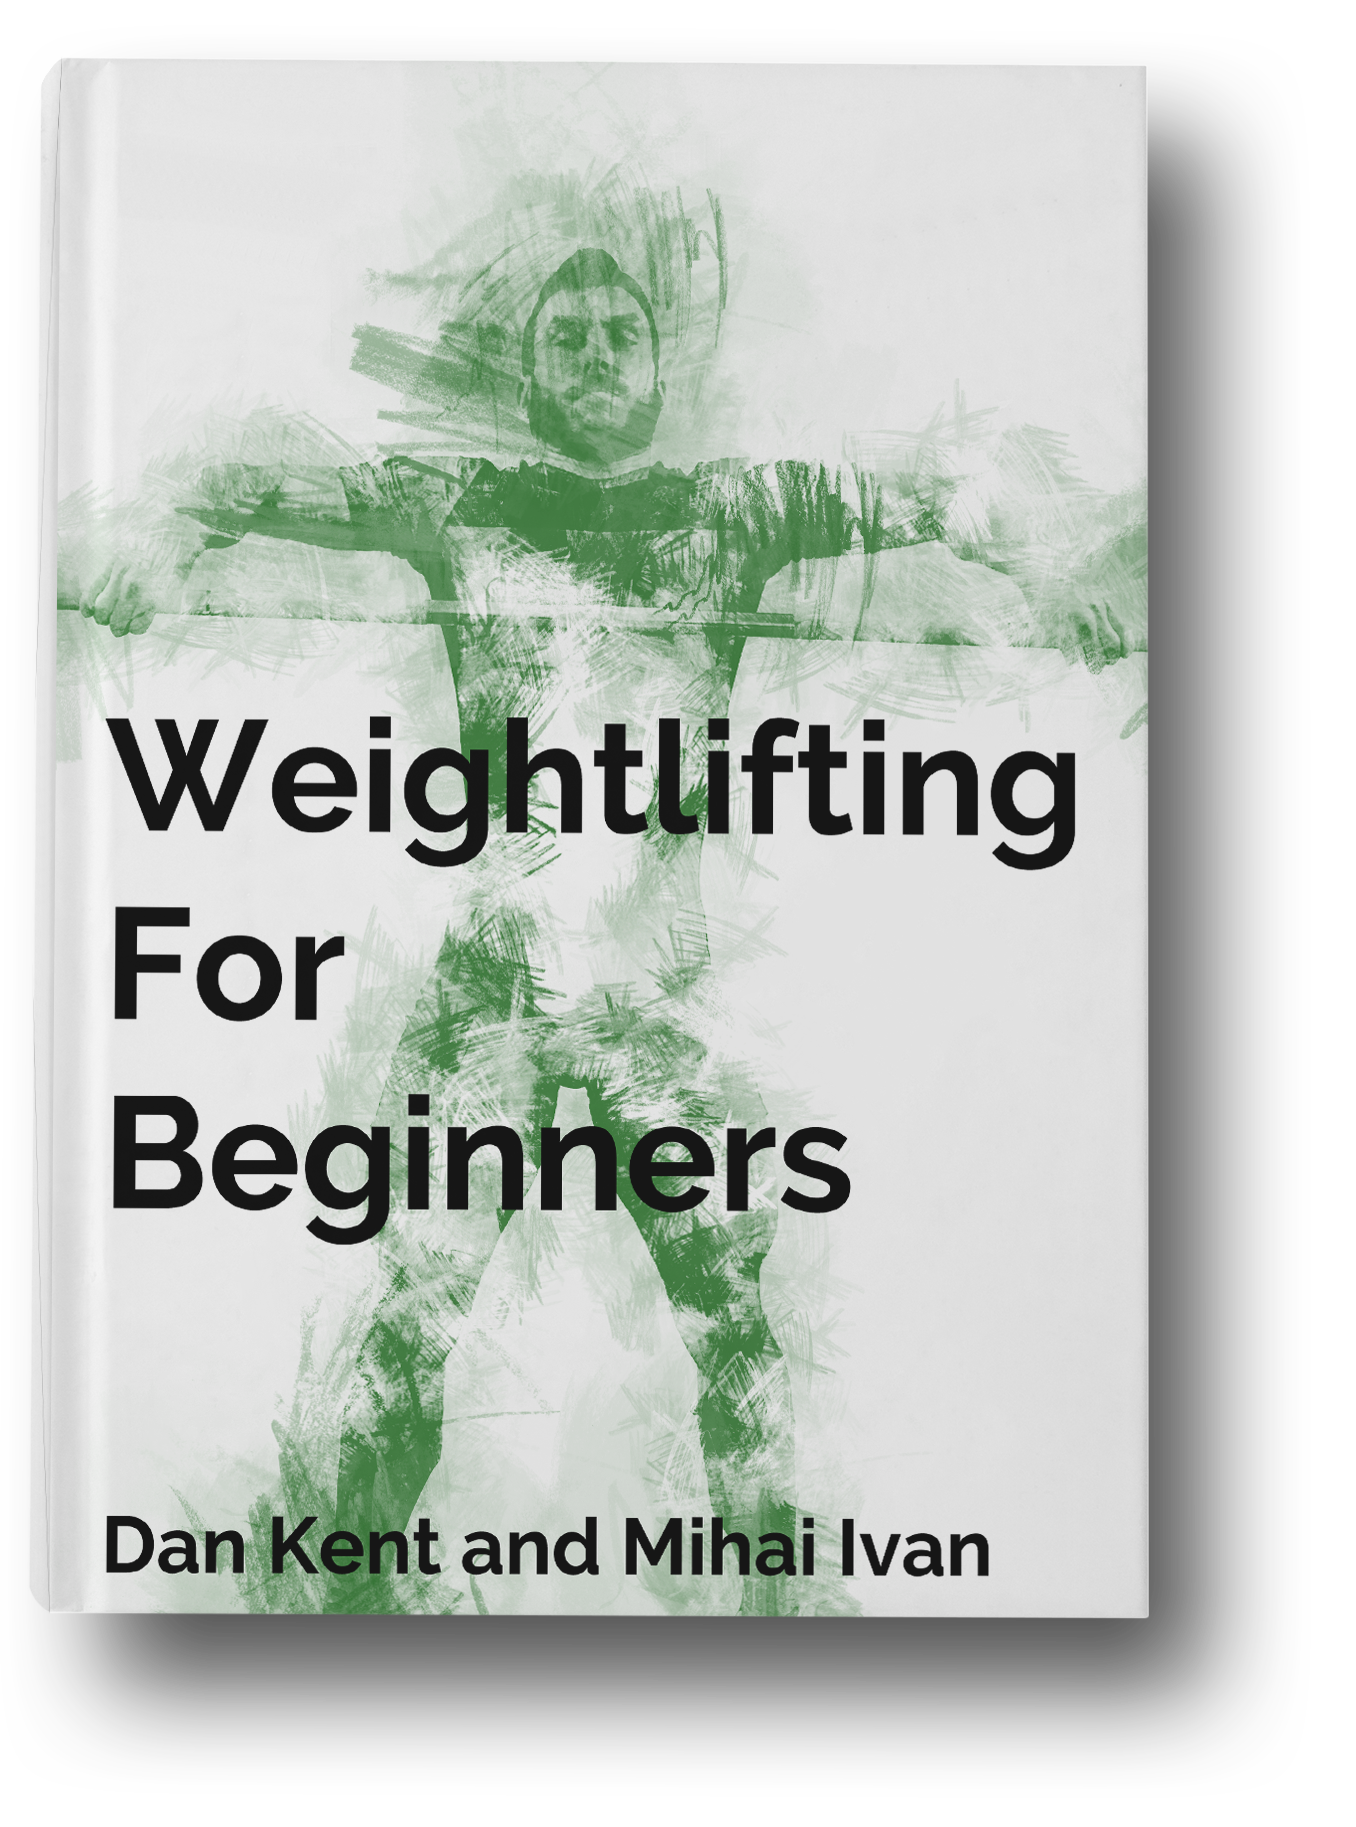 WeightliftingForBeginners_Cover